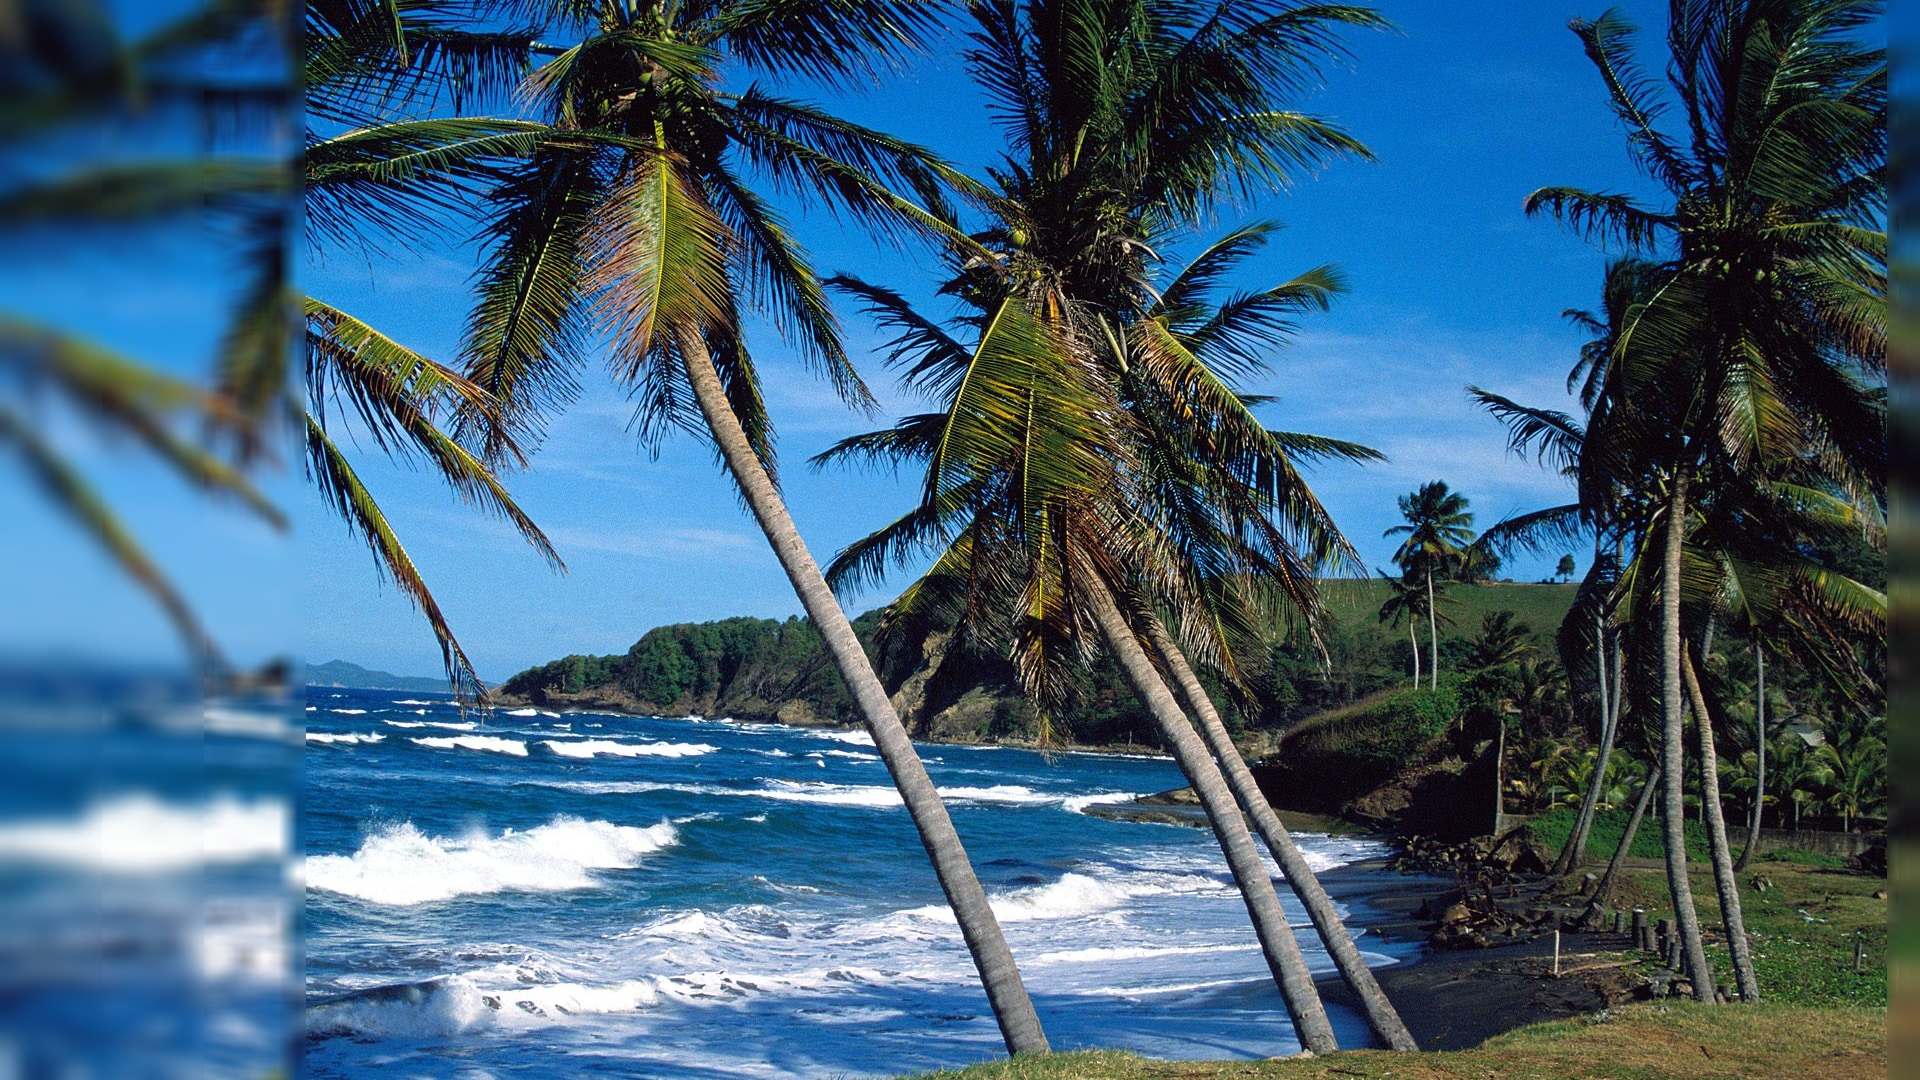 Palmtree Beach Free Wallpaper 83.26 Kb